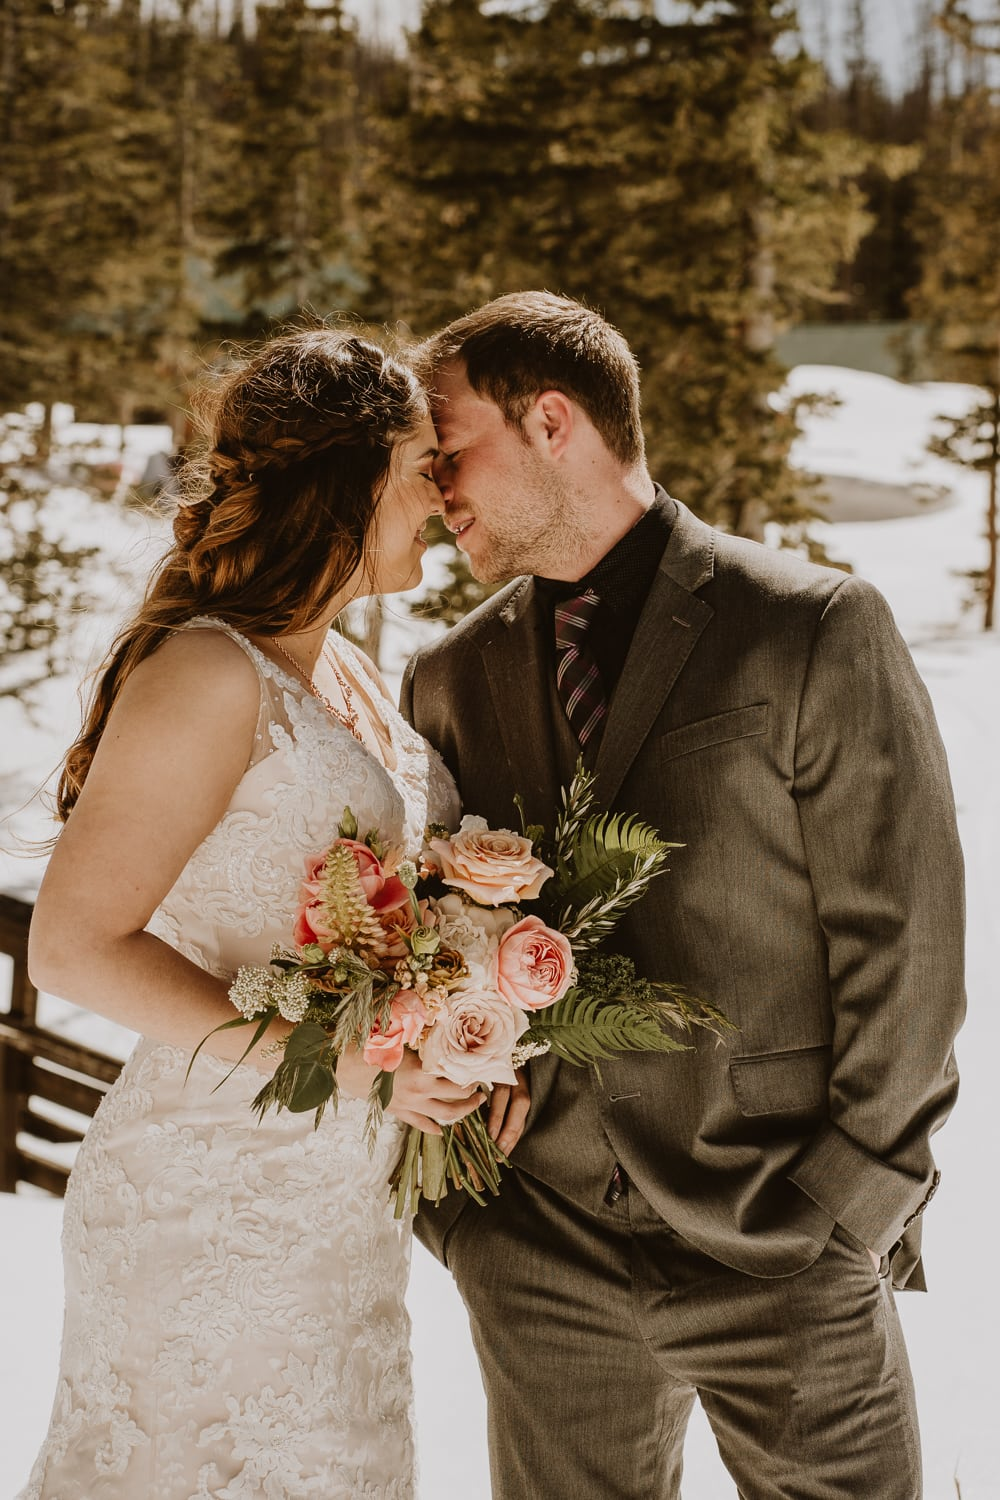 couple shares their first kiss during their adventurous winter elopement. They checked every item off their elopement checklist!